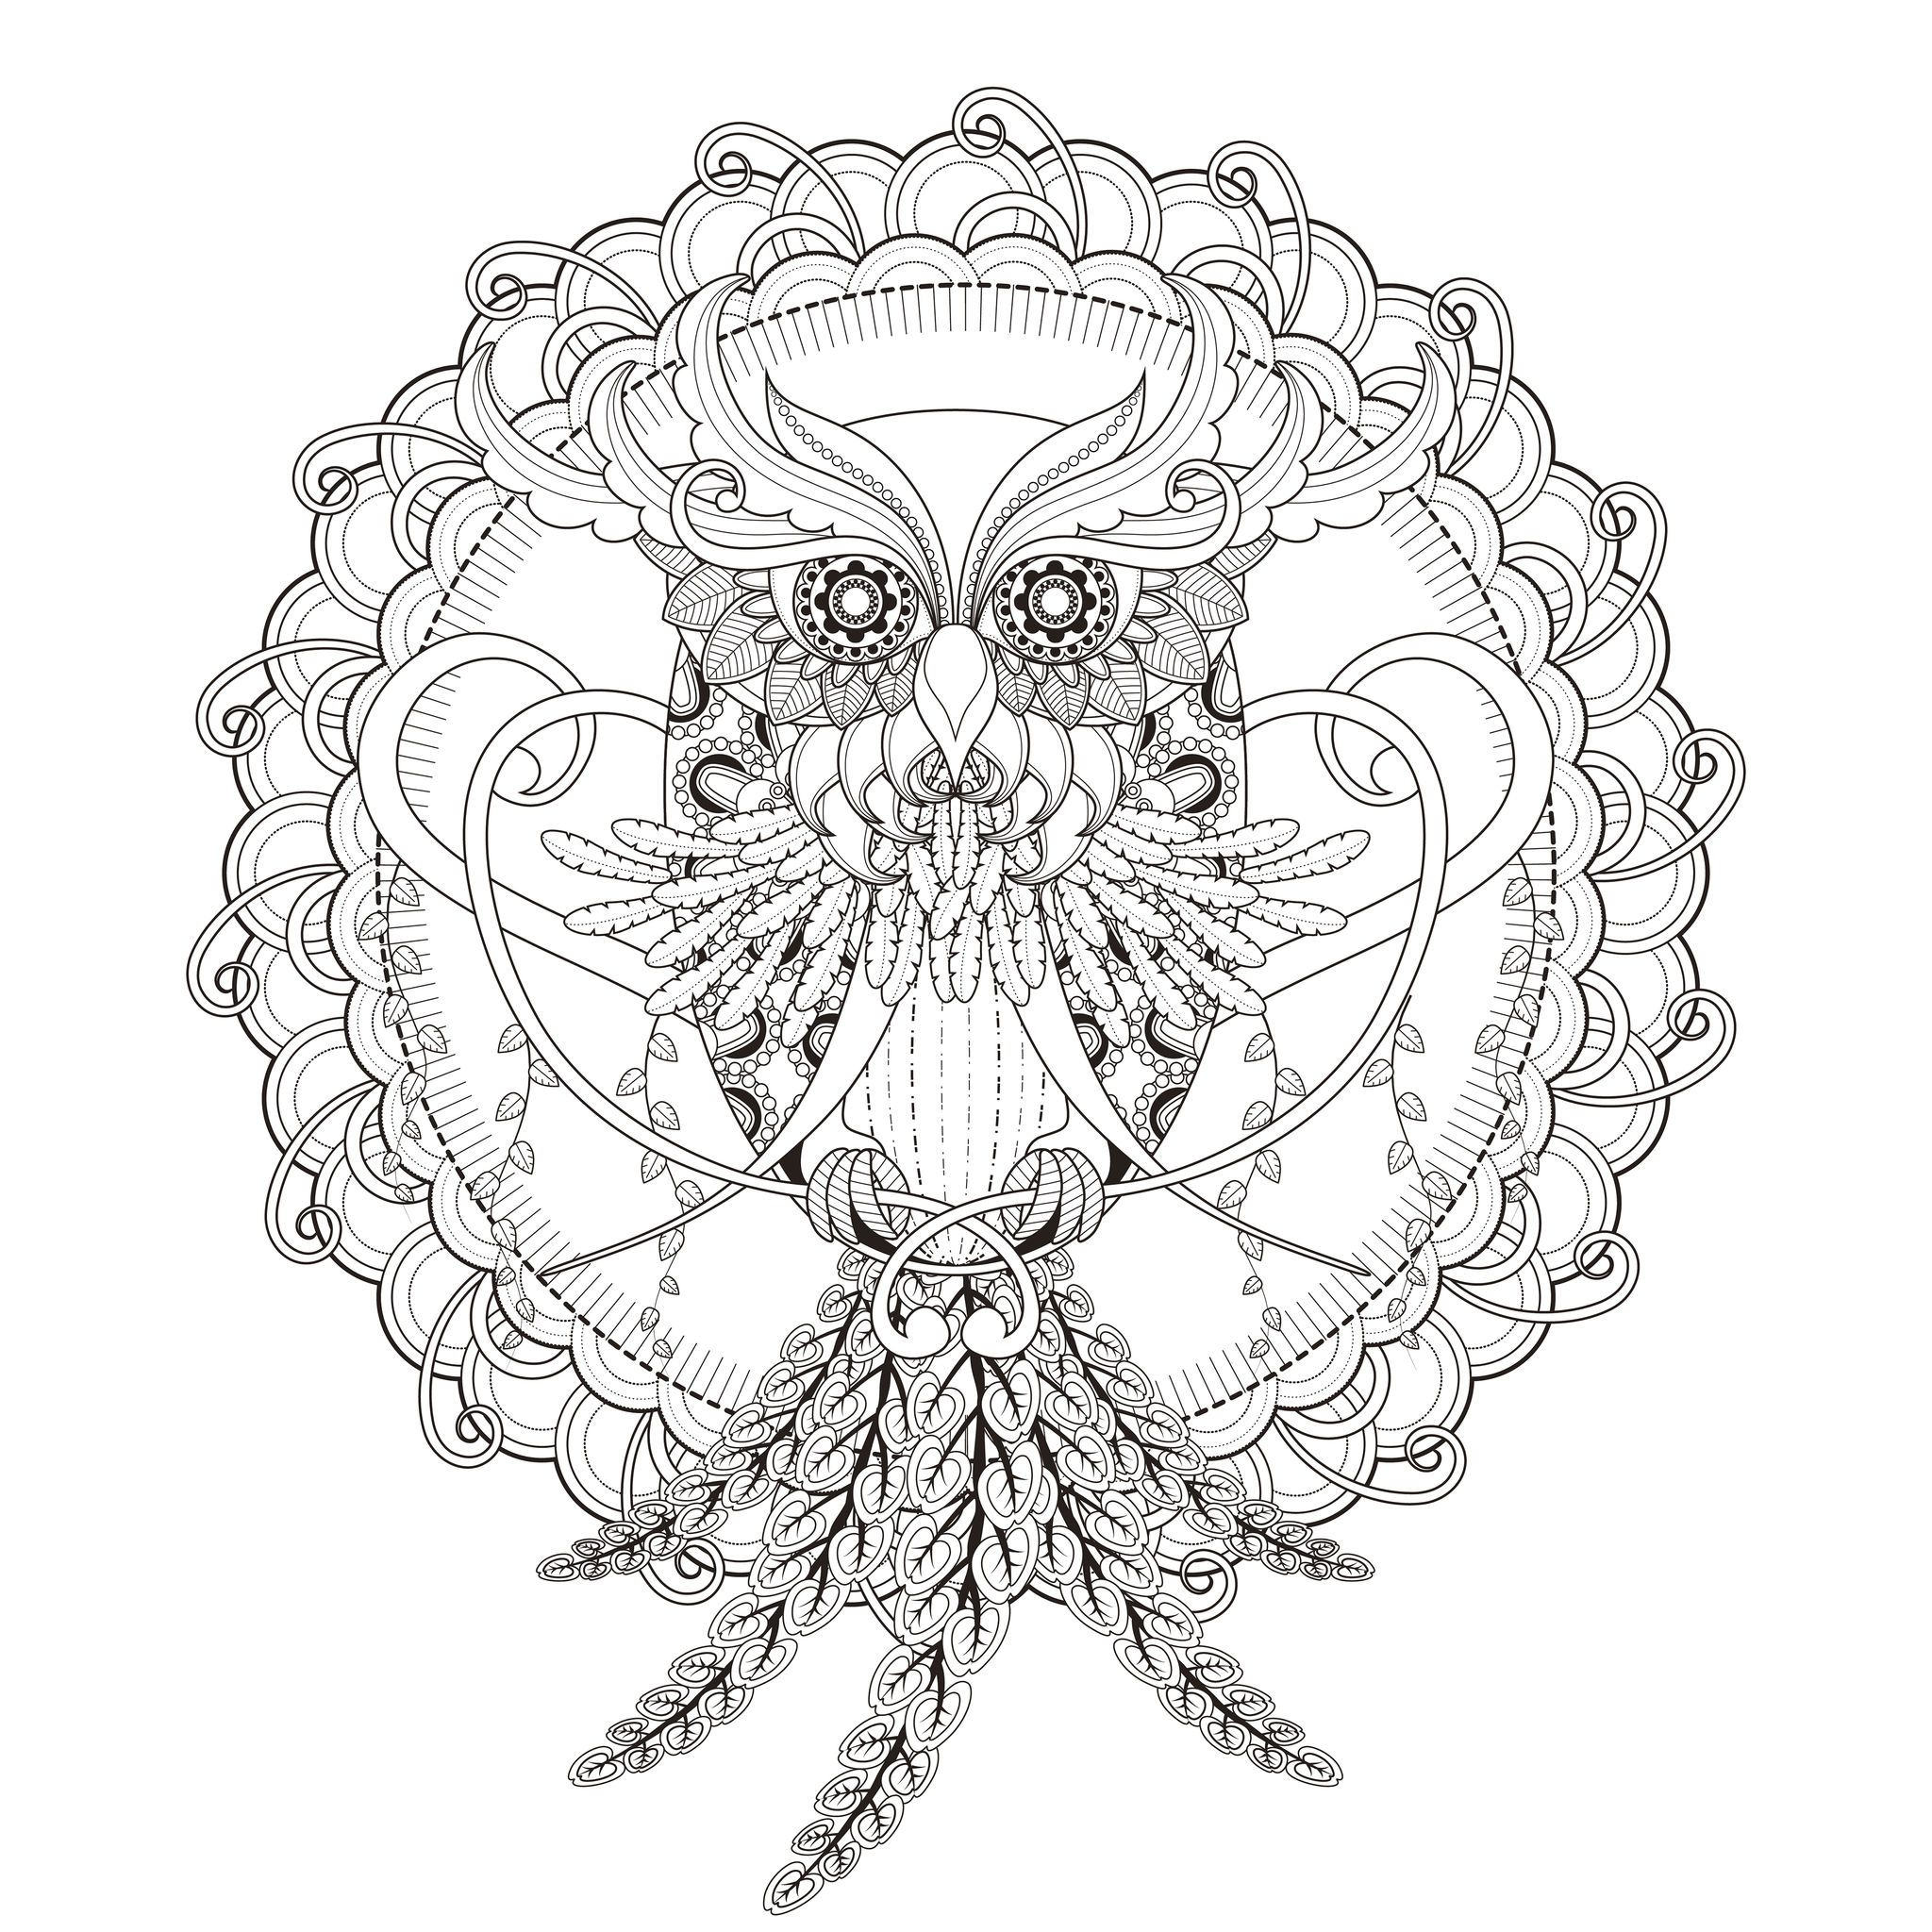 INCREDIBLE Owl Mandala Coloring Page From The Gallery Mandalas Artist Kchung Source 123rf